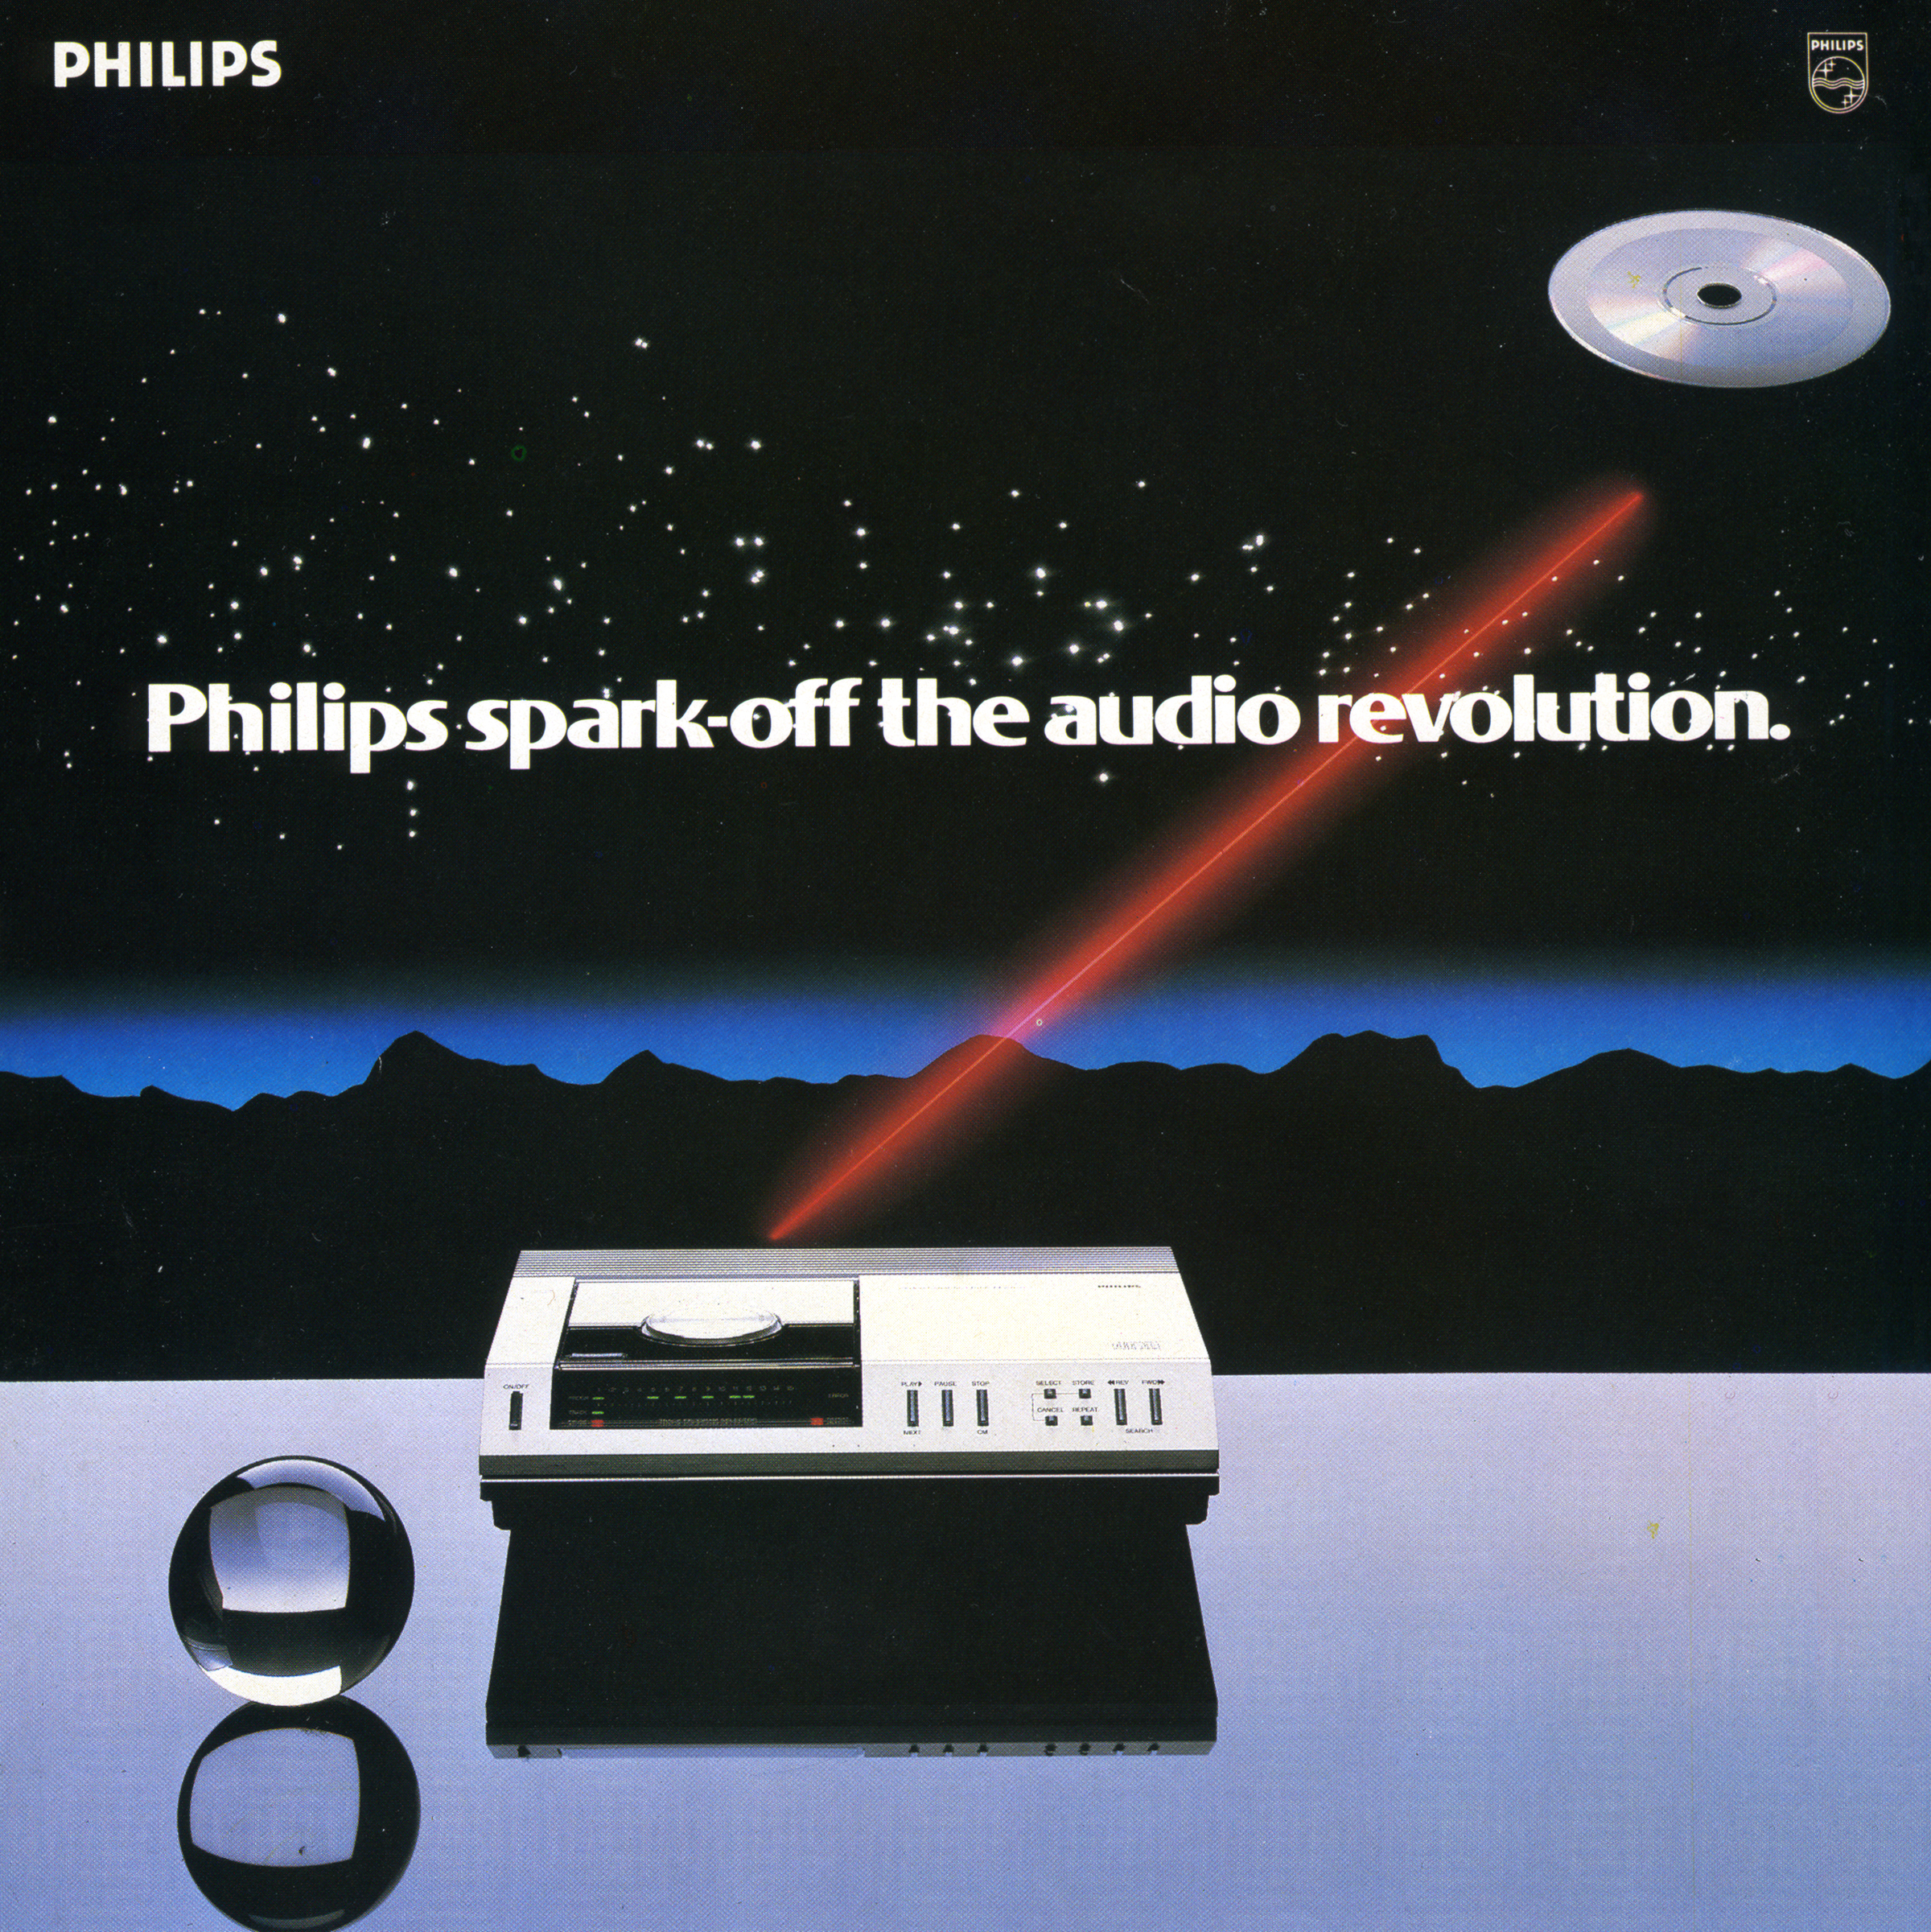 philips compact disc introduction In the spring of 1981, well before the official introduction of the cd, philips demonstrates their newly developed digital compact disc at 'le festival du son' in paris people are elbowing their way into the small auditorium to witness this historic event.